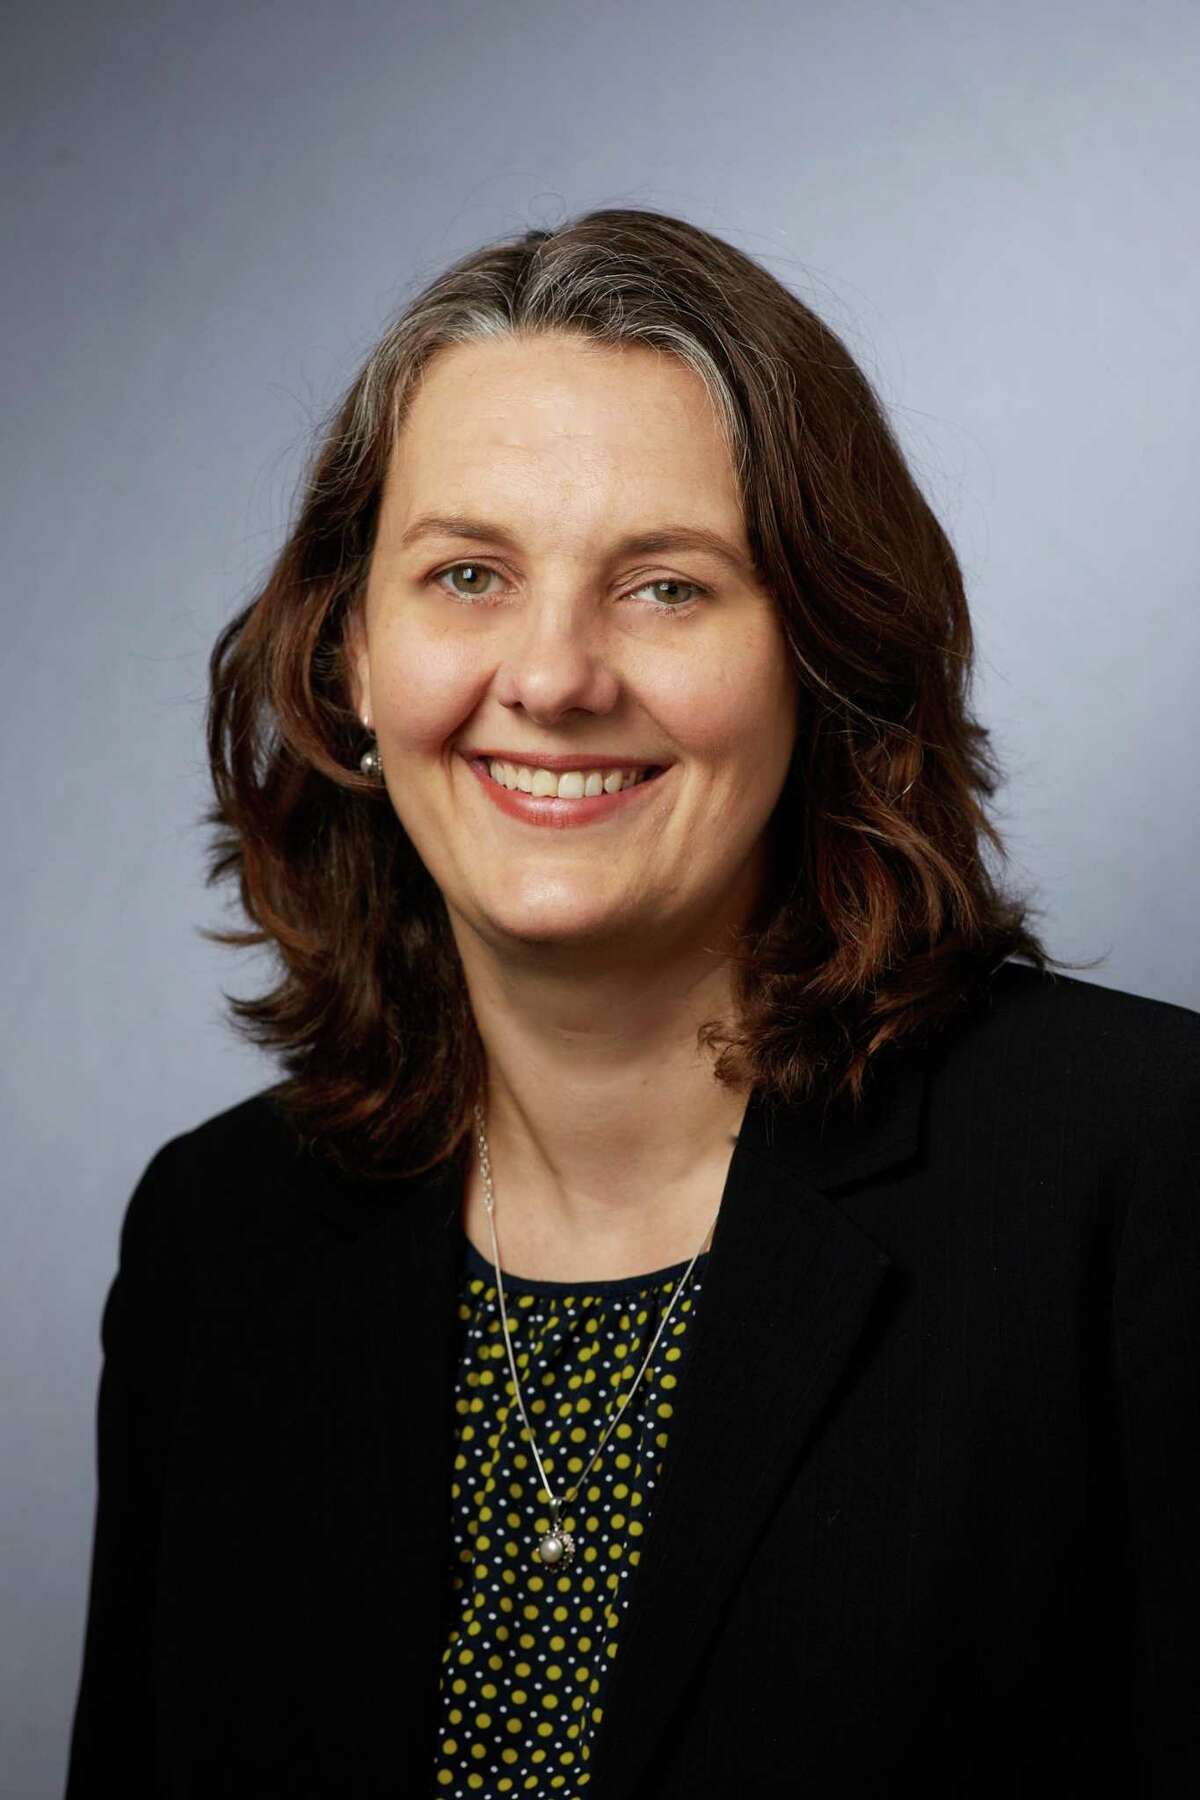 Dr. Kathryn Hawk,assistant professor in emergency medicine in the Yale School of Medicine and attending physician in the Yale New Haven Hospital Emergency Department, was lead author of the study of buprenorphine use in hospital emergency departments.